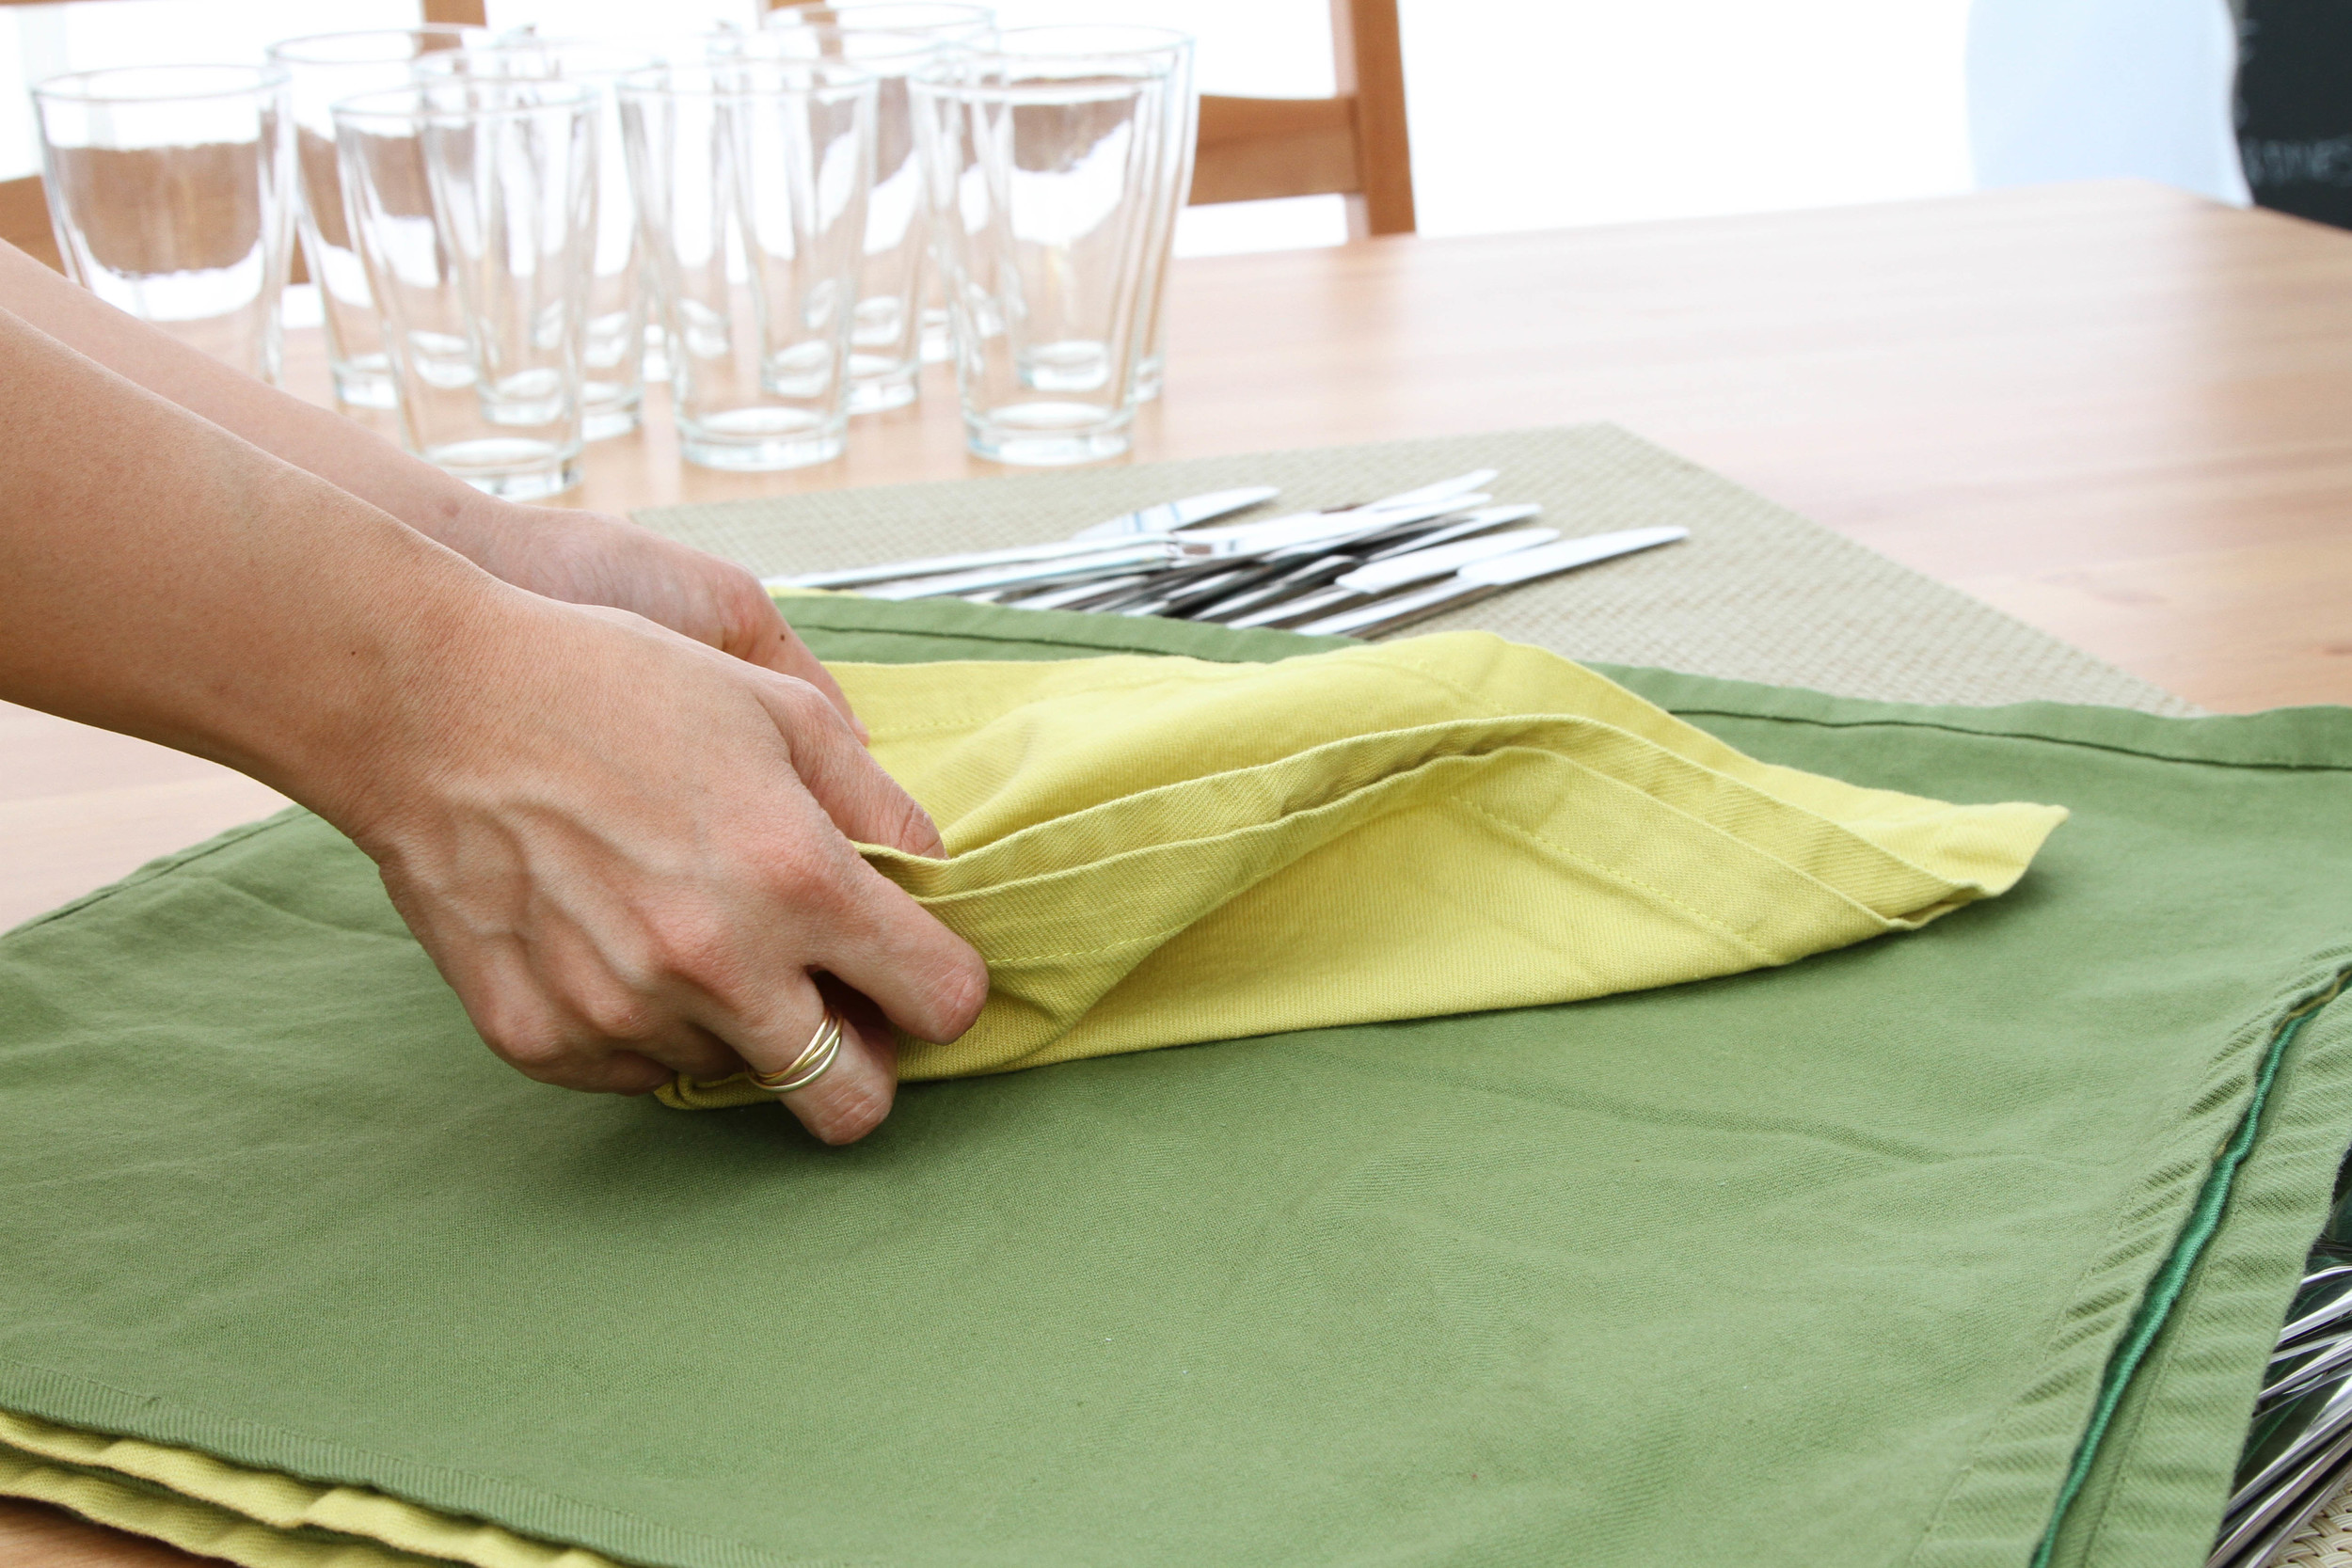 Getting the napkins ready